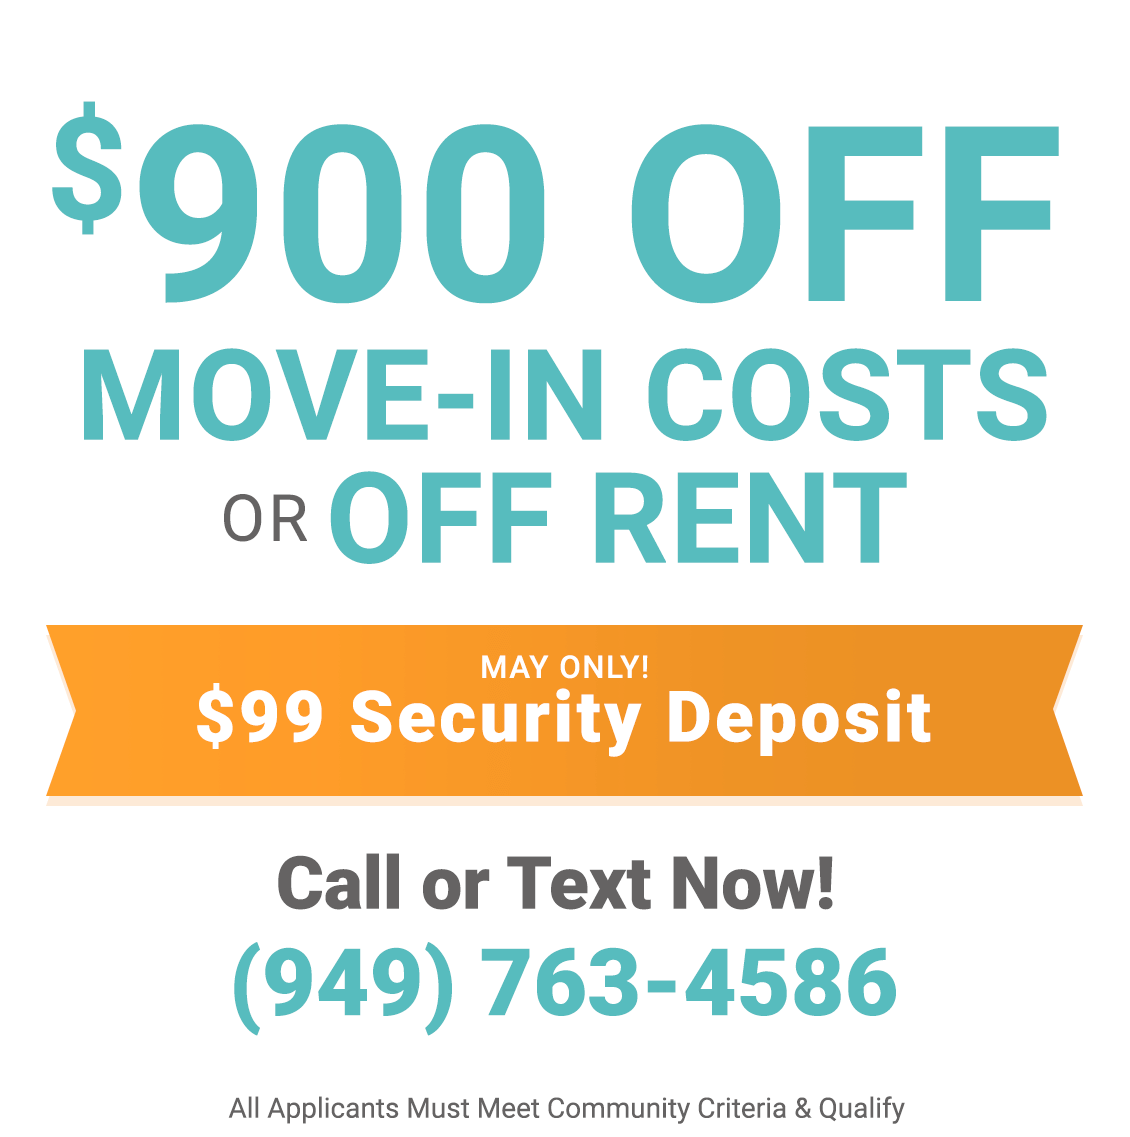 $900 off move-in costs or off rent only during May